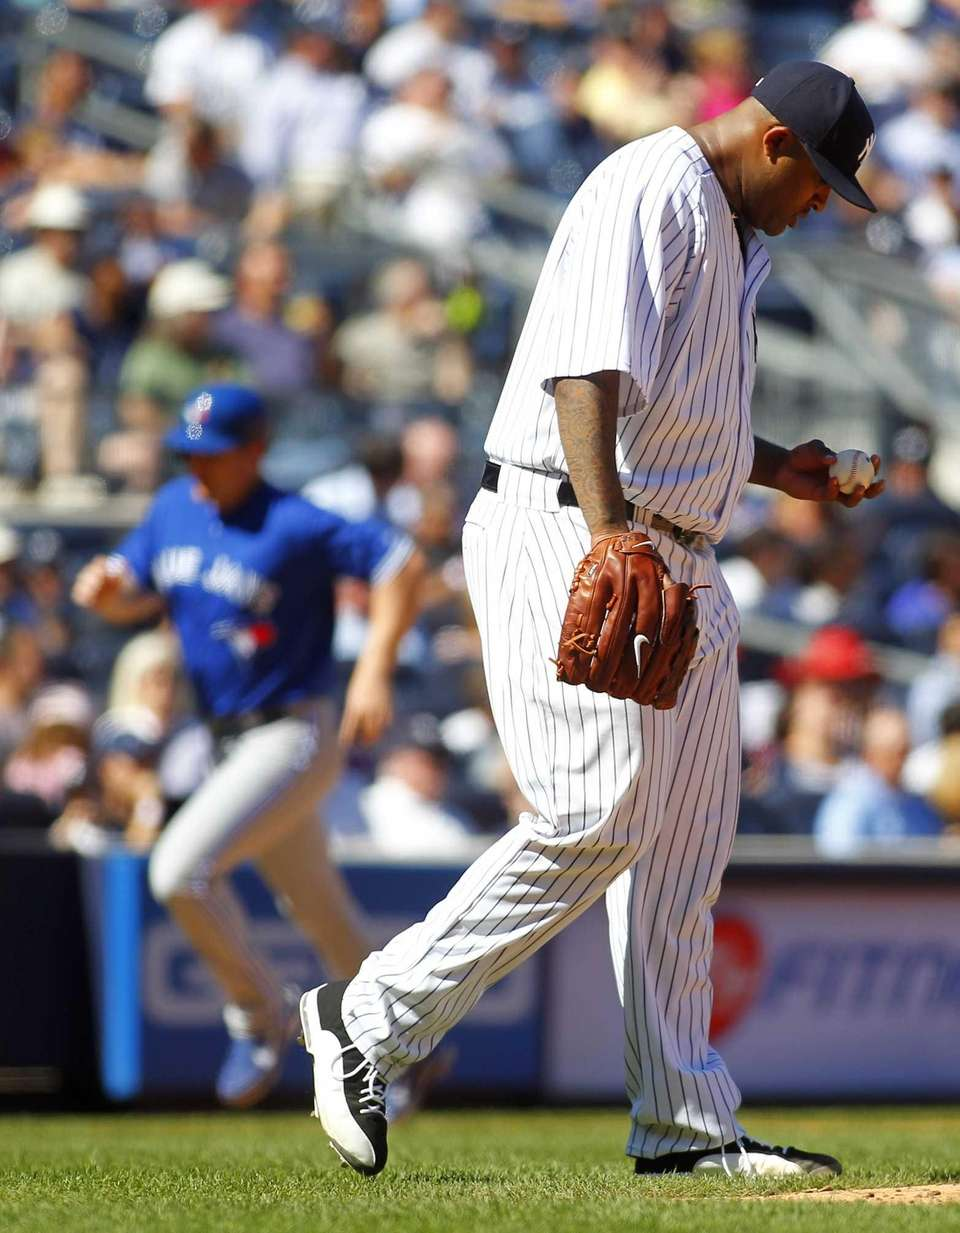 Yankees pitcher CC Sabathia looks down as Toronto